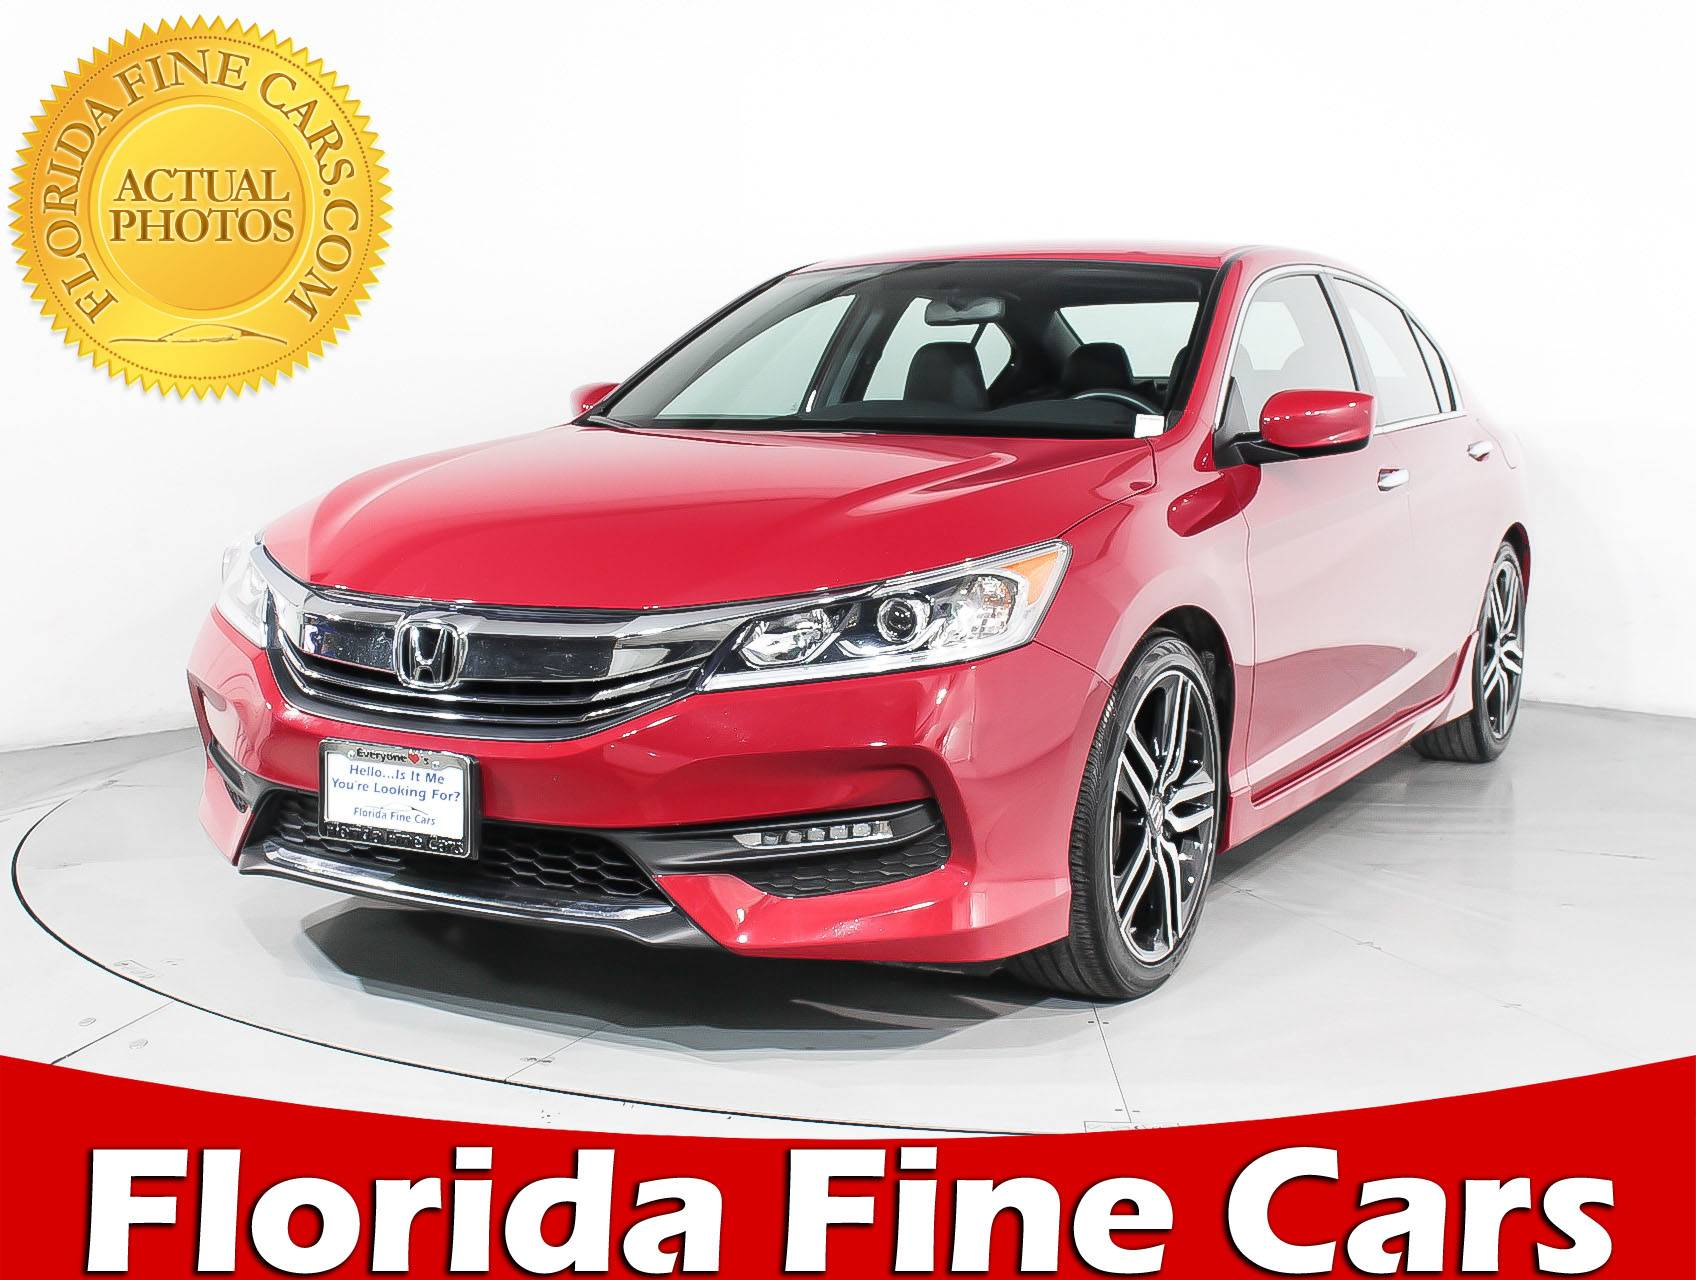 Used 2016 HONDA ACCORD SPORT Sedan For Sale In HOLLYWOOD, FL | 91796 |  Florida Fine Cars